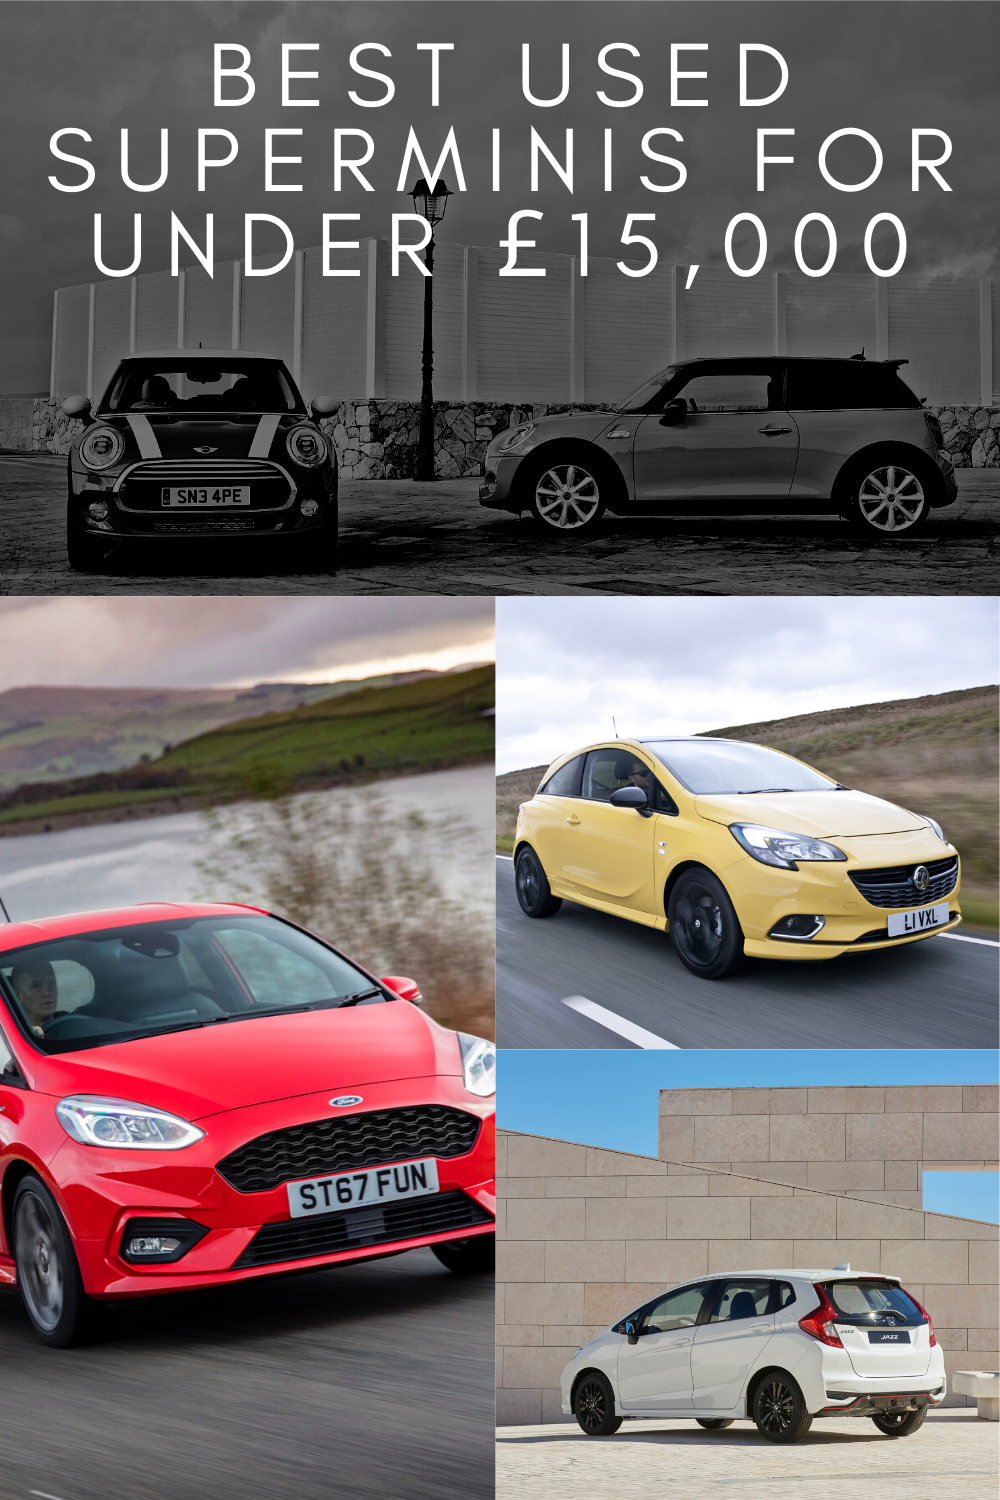 Best Used Superminis For Under £15,000 in 2020 Hatchback